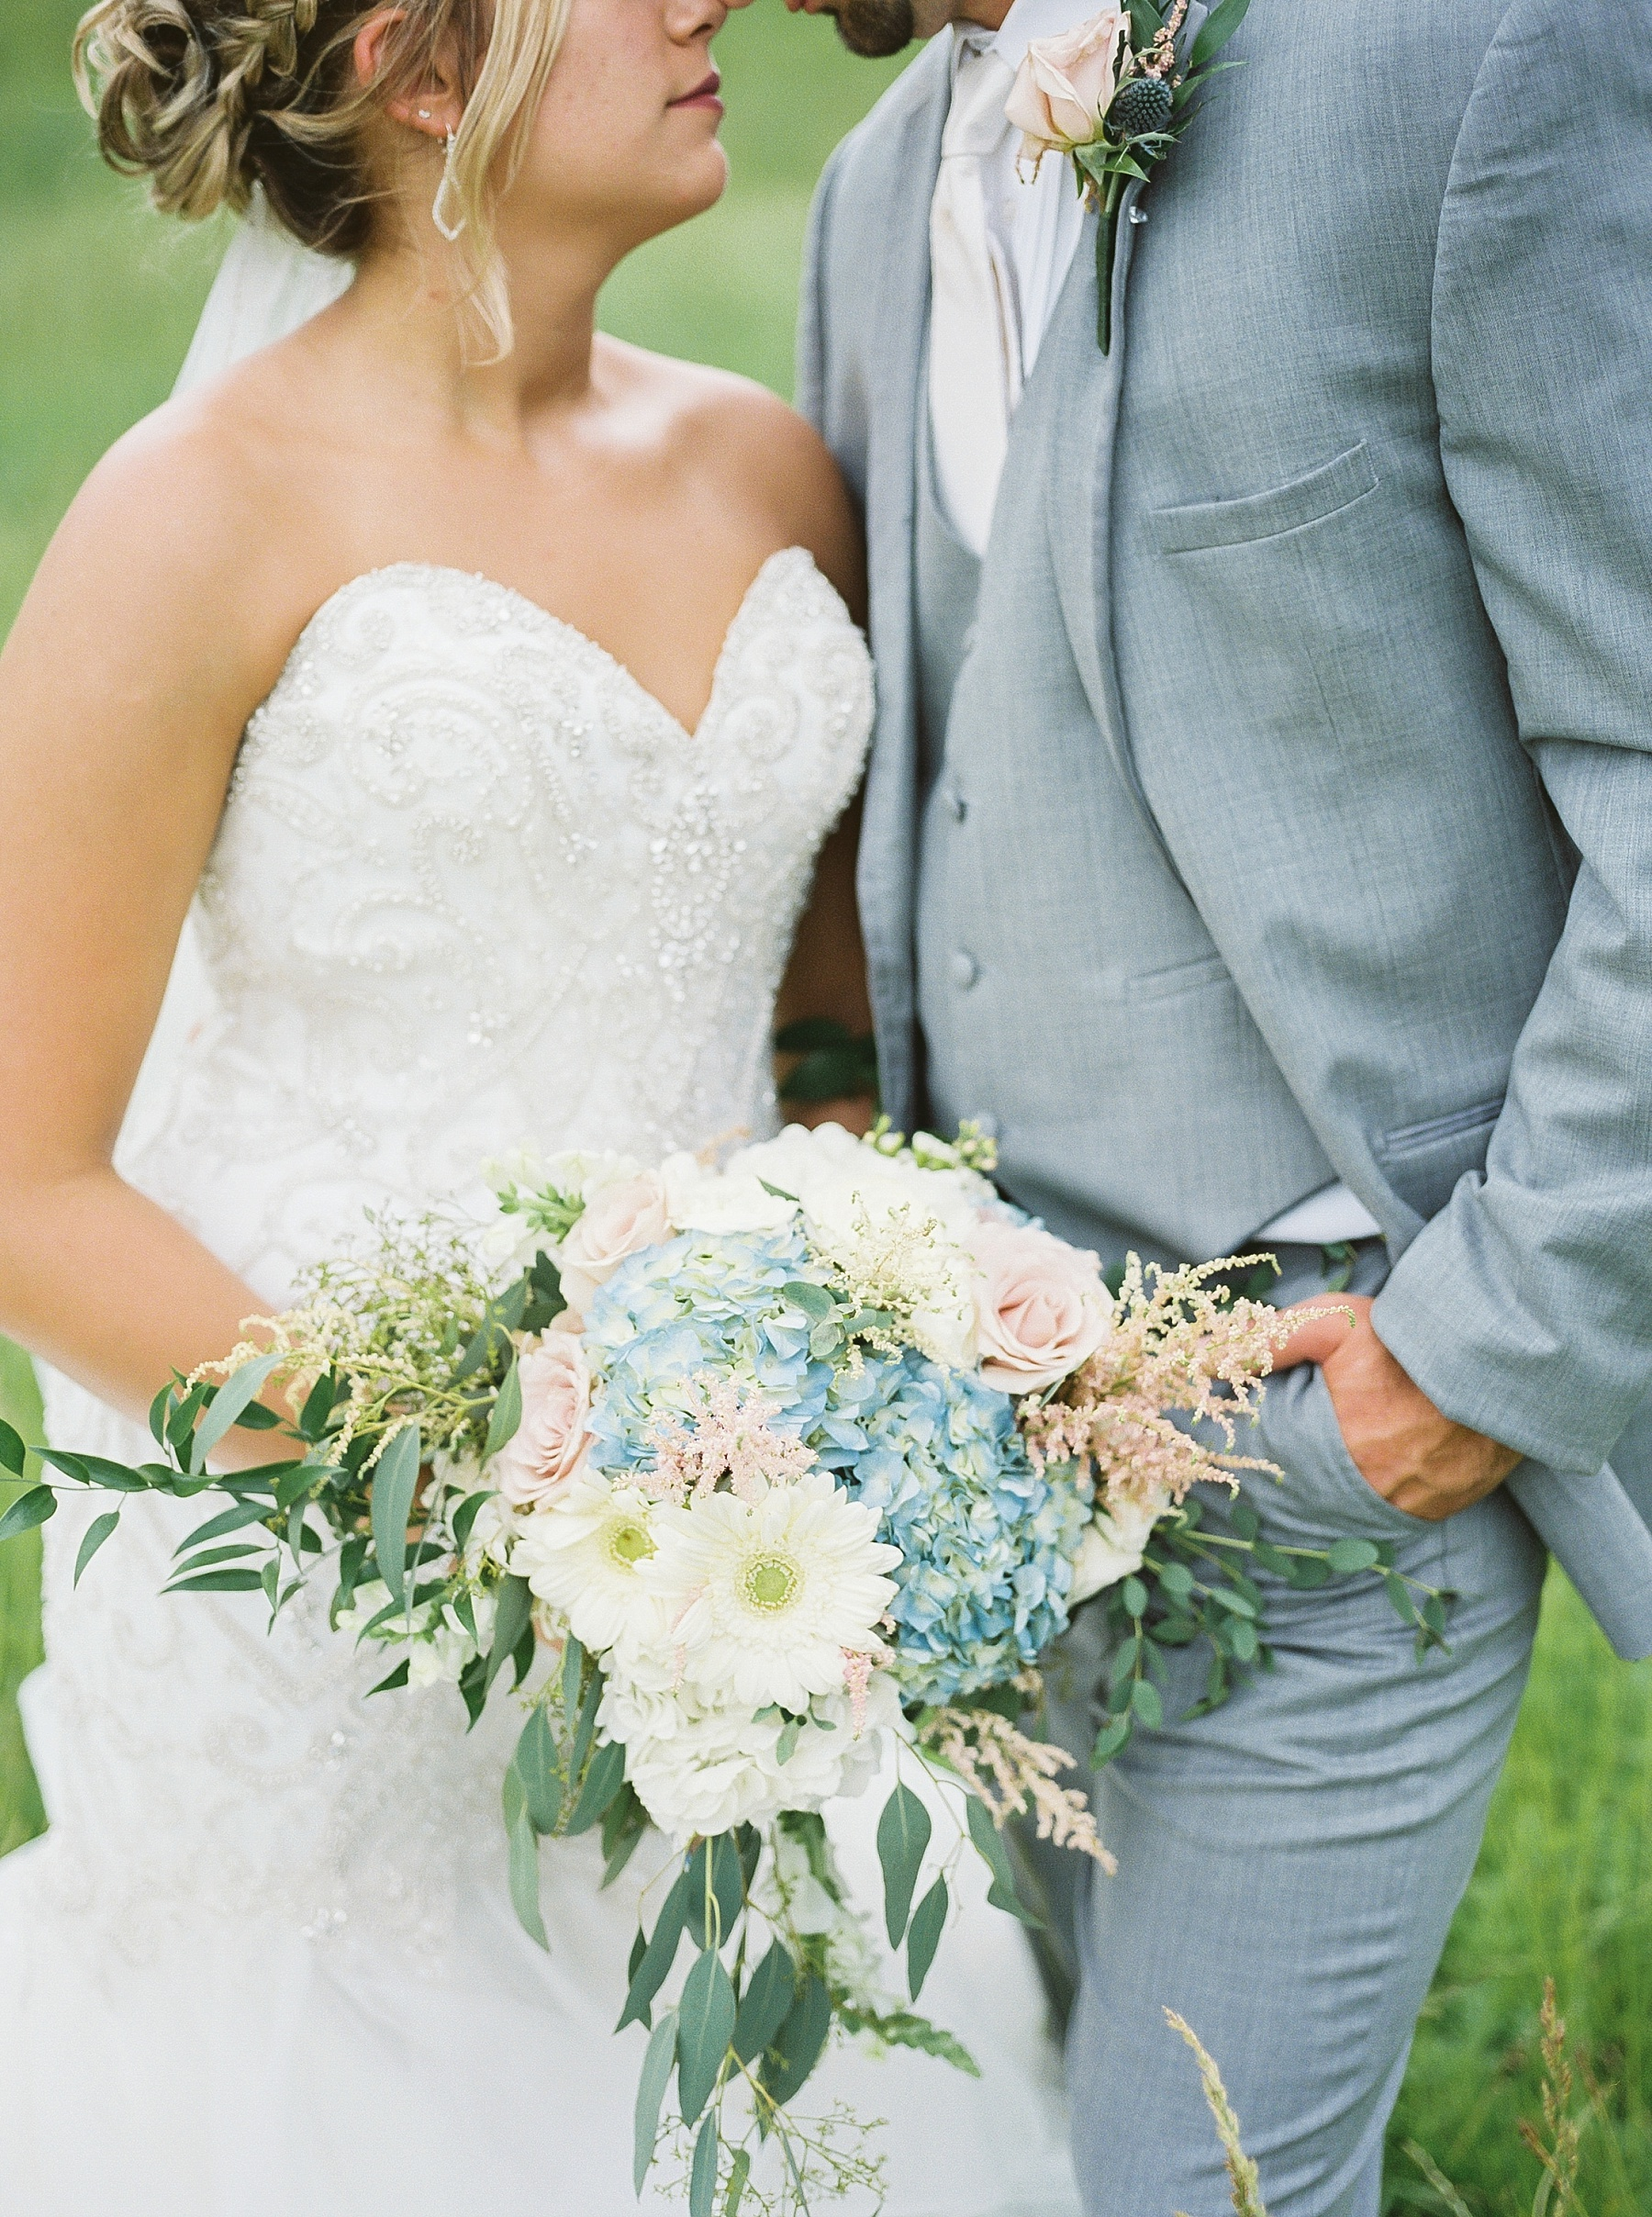 Sky Blue and Quartz Spring Wedding at Open Fields of Family Farm by Kelsi Kliethermes Photography Best Missouri and Maui Wedding Photographer_0055.jpg